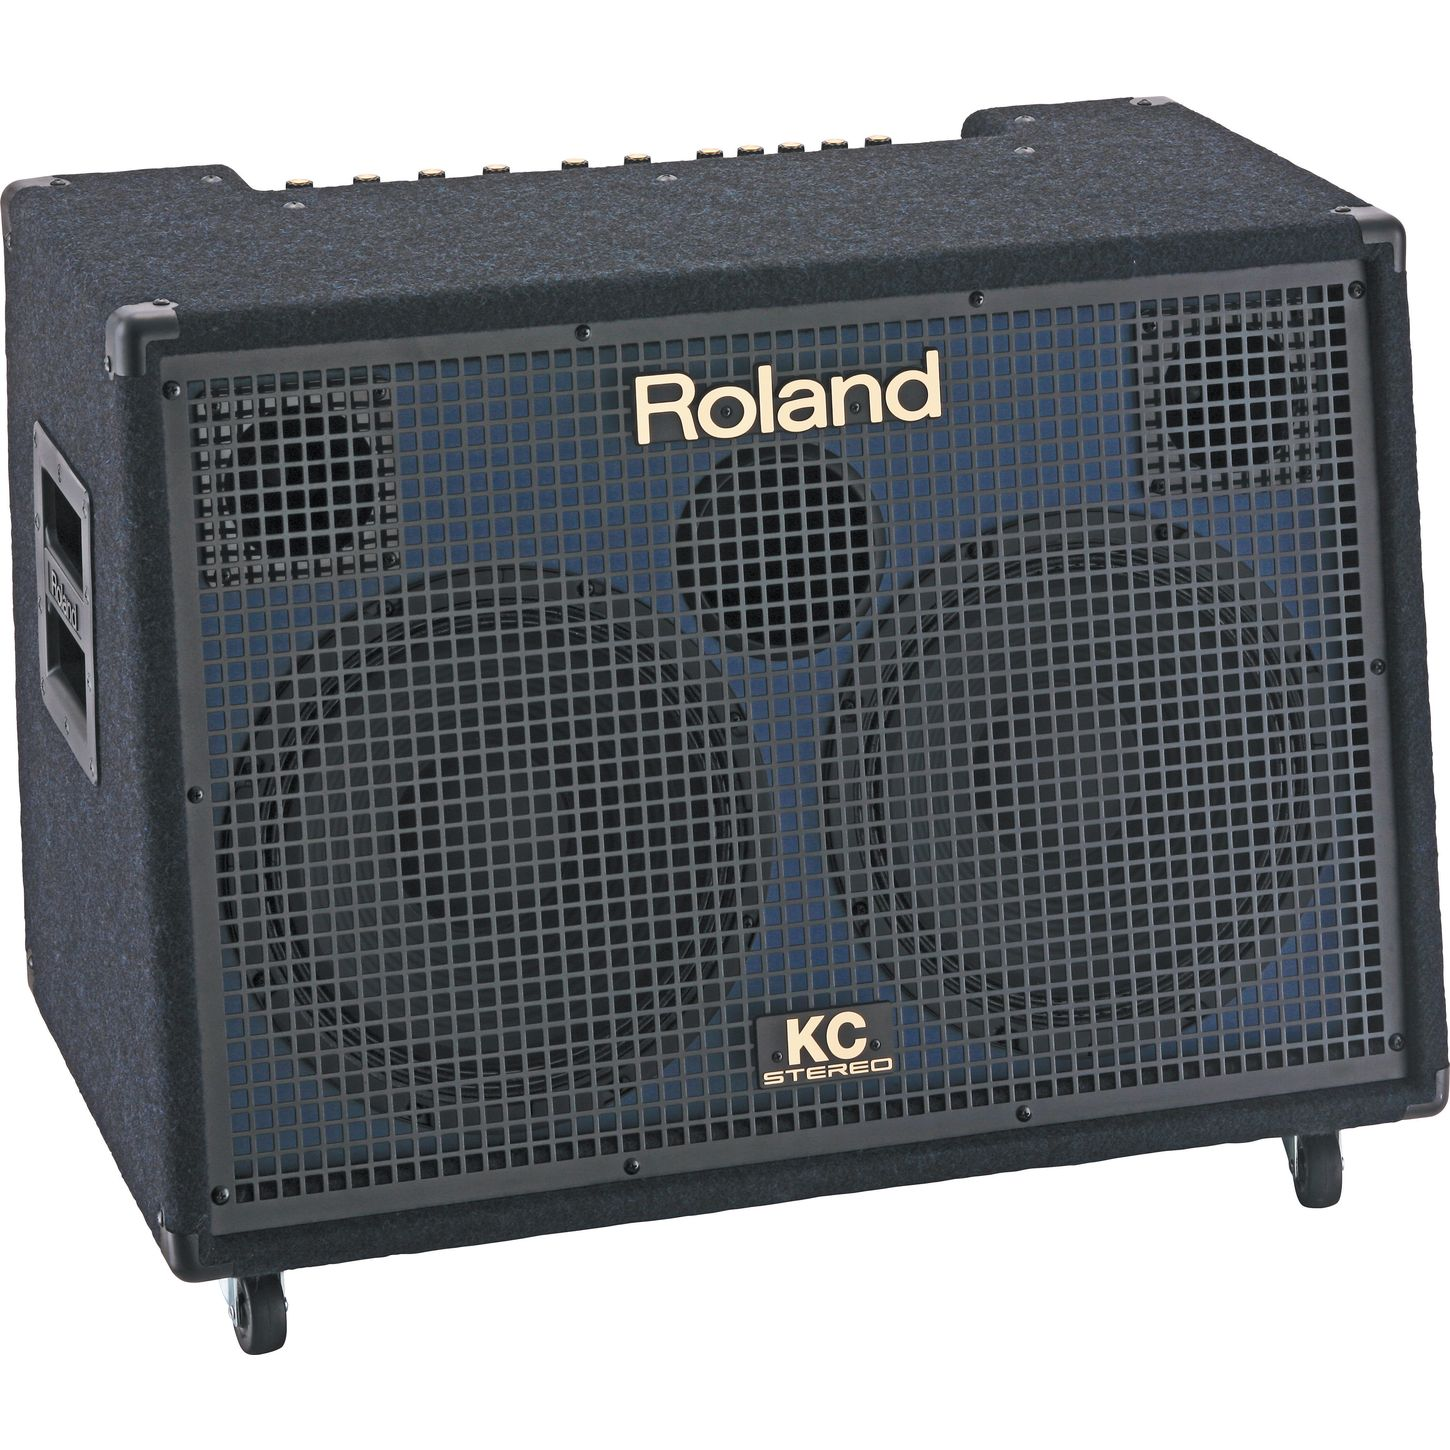 Roland KC-880 Stereo Keyboard Amplifier